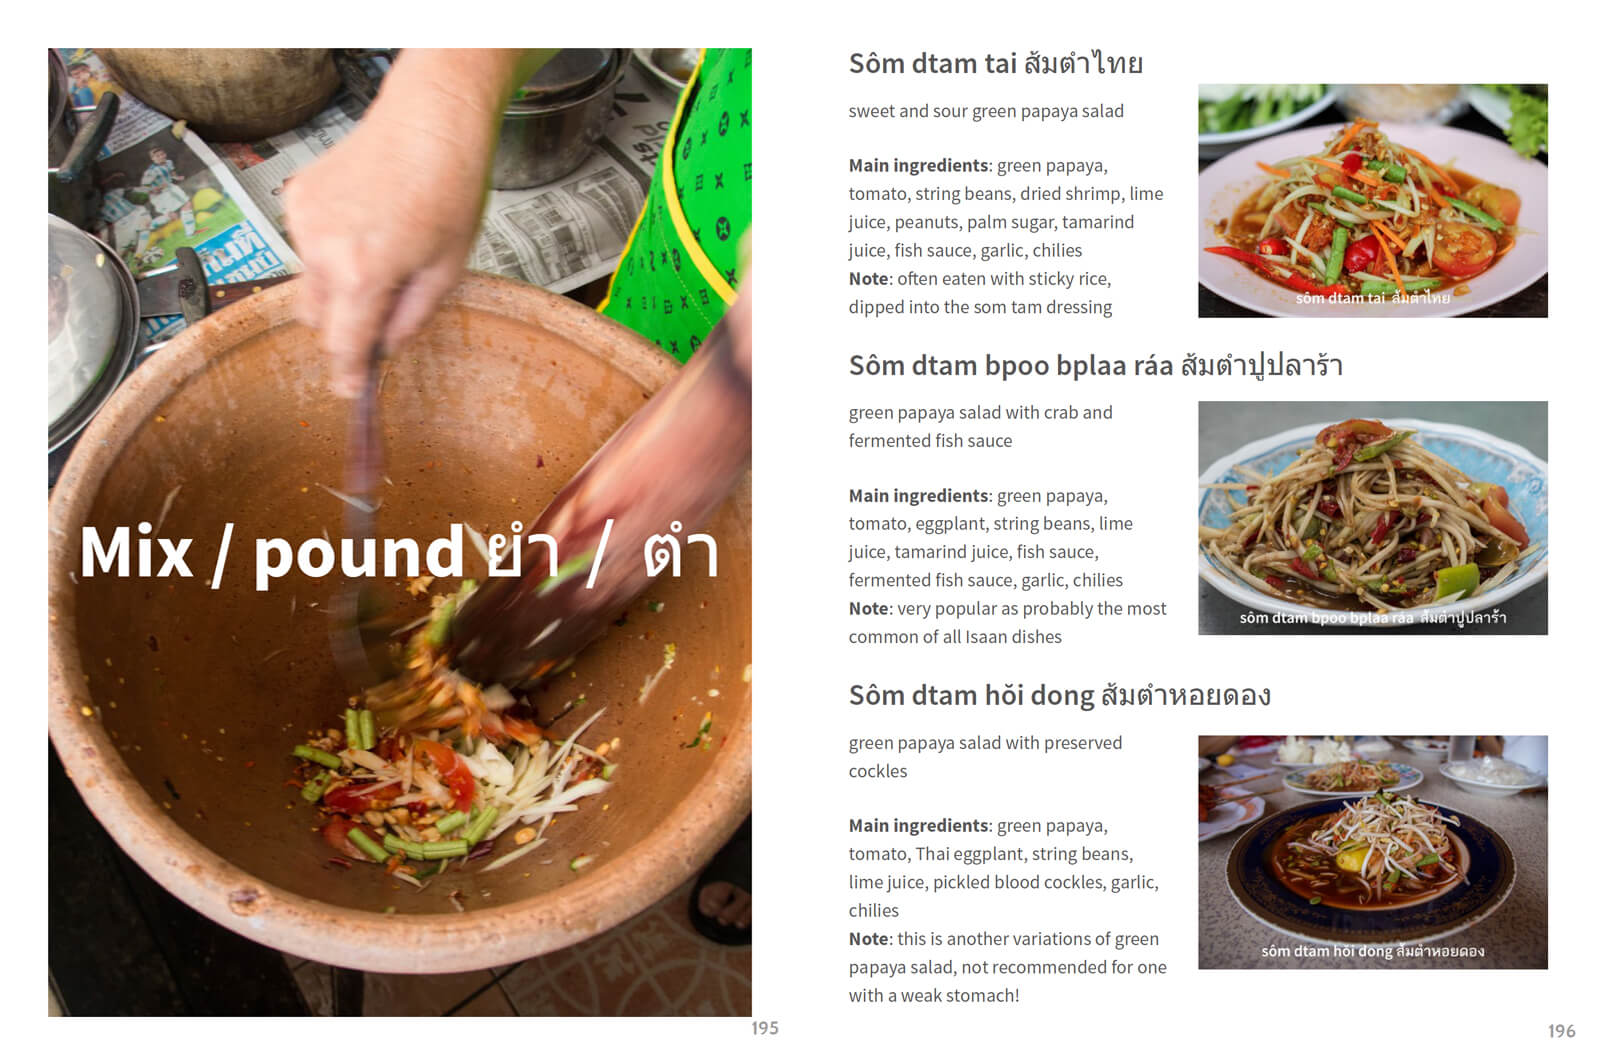 Eating thai food guide thai street food restaurants and recipes the layout of the guide is specifically designed to be easy to read and illustrated with pictures that easily explain how and what thai food to order forumfinder Image collections